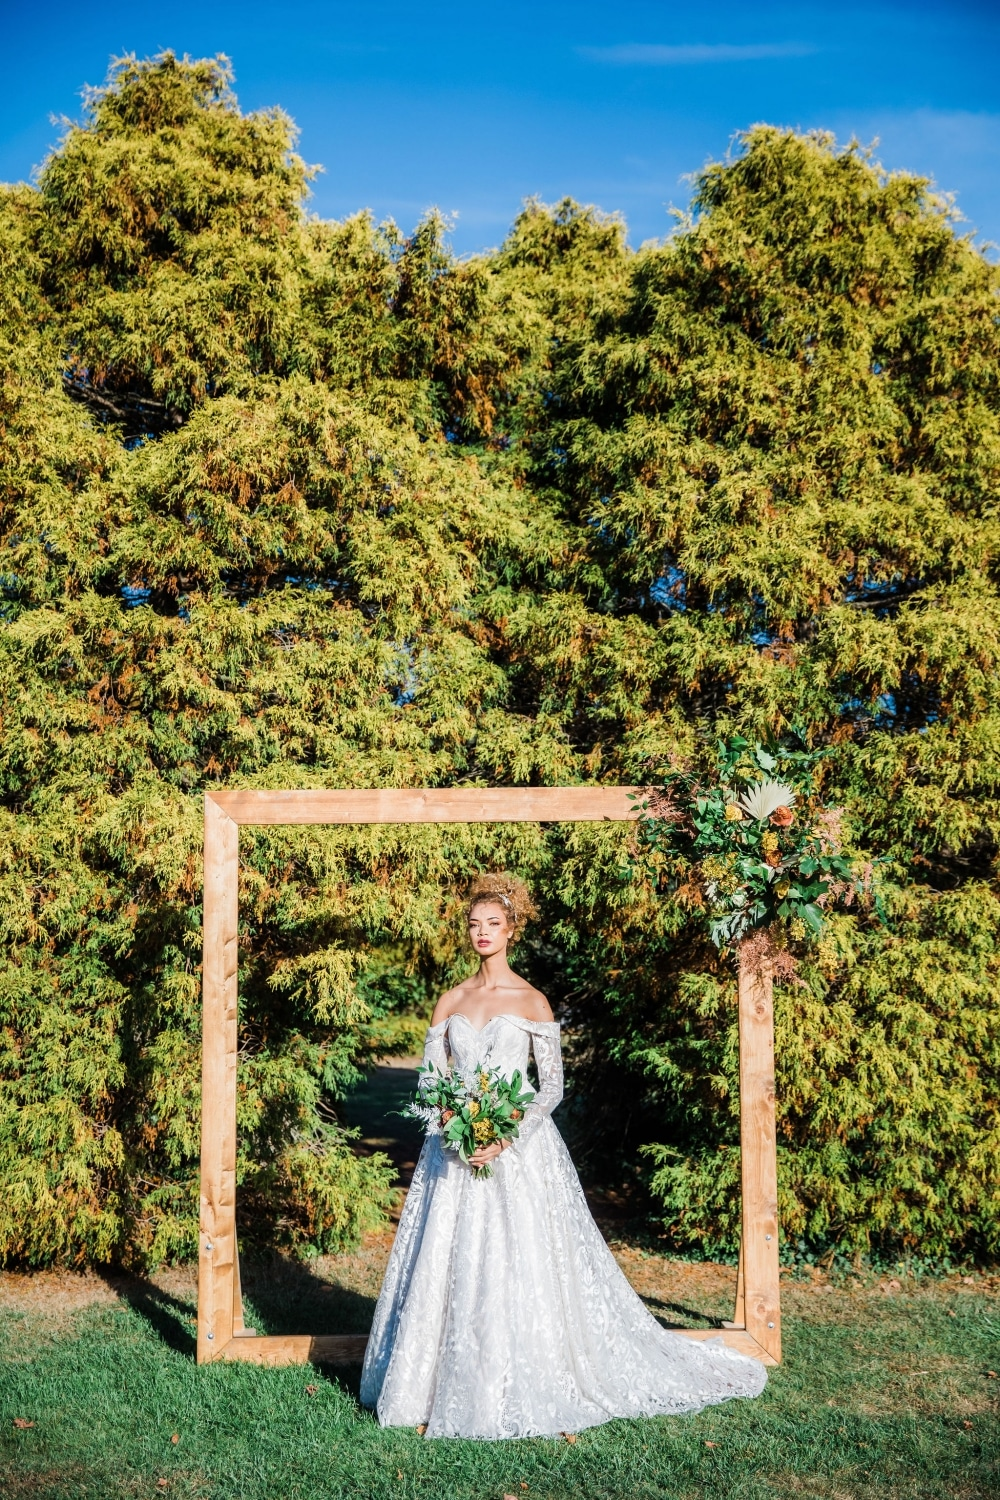 fride under altar in fall wedding with green trees in background